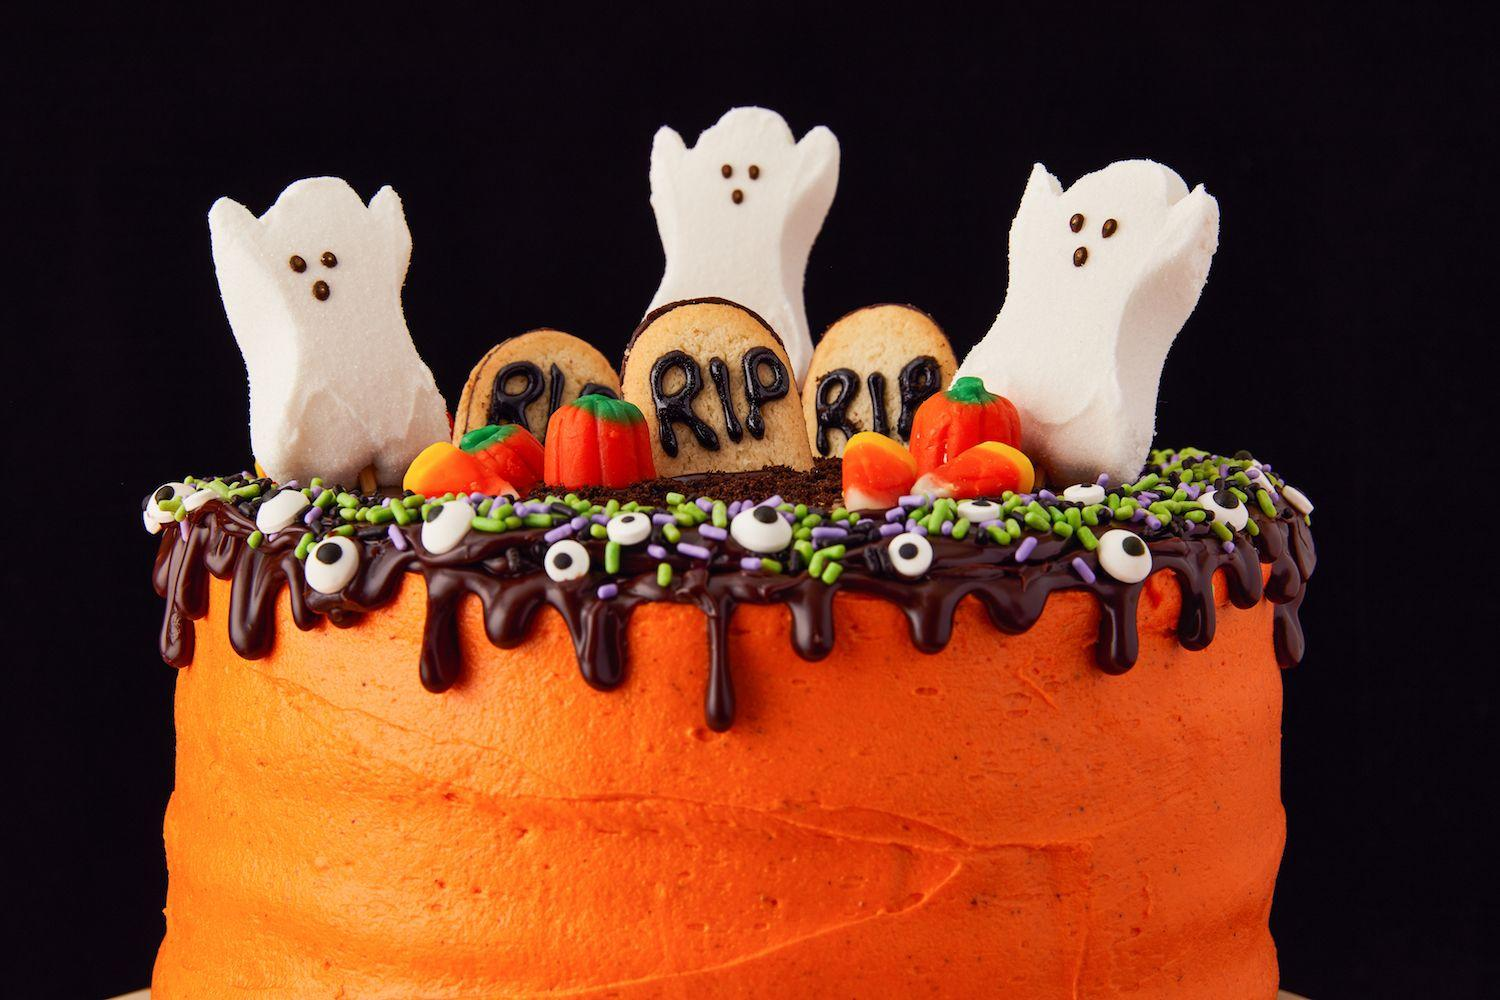 "<p>We know Halloween is all about the candy, but that doesn't mean you can't have your cake and eat it, too. These easy recipes are fun to bring to parties or just have around the house as you gear up for Hallow's Eve. Don't stop there, delight little ghouls with <a href=""/holiday-recipes/halloween/g2172/halloween-cake-cupcake-recipes/"" data-ylk=""slk:spooky-cute Halloween cupcakes"" class=""link rapid-noclick-resp"">spooky-cute Halloween cupcakes</a>, celebrate <a href=""/holiday-recipes/halloween/g1335/dia-de-los-muertos-day-dead-party-foods/"" data-ylk=""slk:day of the dead"" class=""link rapid-noclick-resp"">day of the dead</a> or and just enjoy a <a href=""/holiday-recipes/halloween/g1533/pumpkin-cakes/"" data-ylk=""slk:pumpkin that's really a cake"" class=""link rapid-noclick-resp"">pumpkin that's really a cake</a>—all in our collection of <a href=""http://www.delish.com/holiday-recipes/halloween/"" rel=""nofollow noopener"" target=""_blank"" data-ylk=""slk:fun Halloween foods"" class=""link rapid-noclick-resp"">fun Halloween foods</a>.</p>"